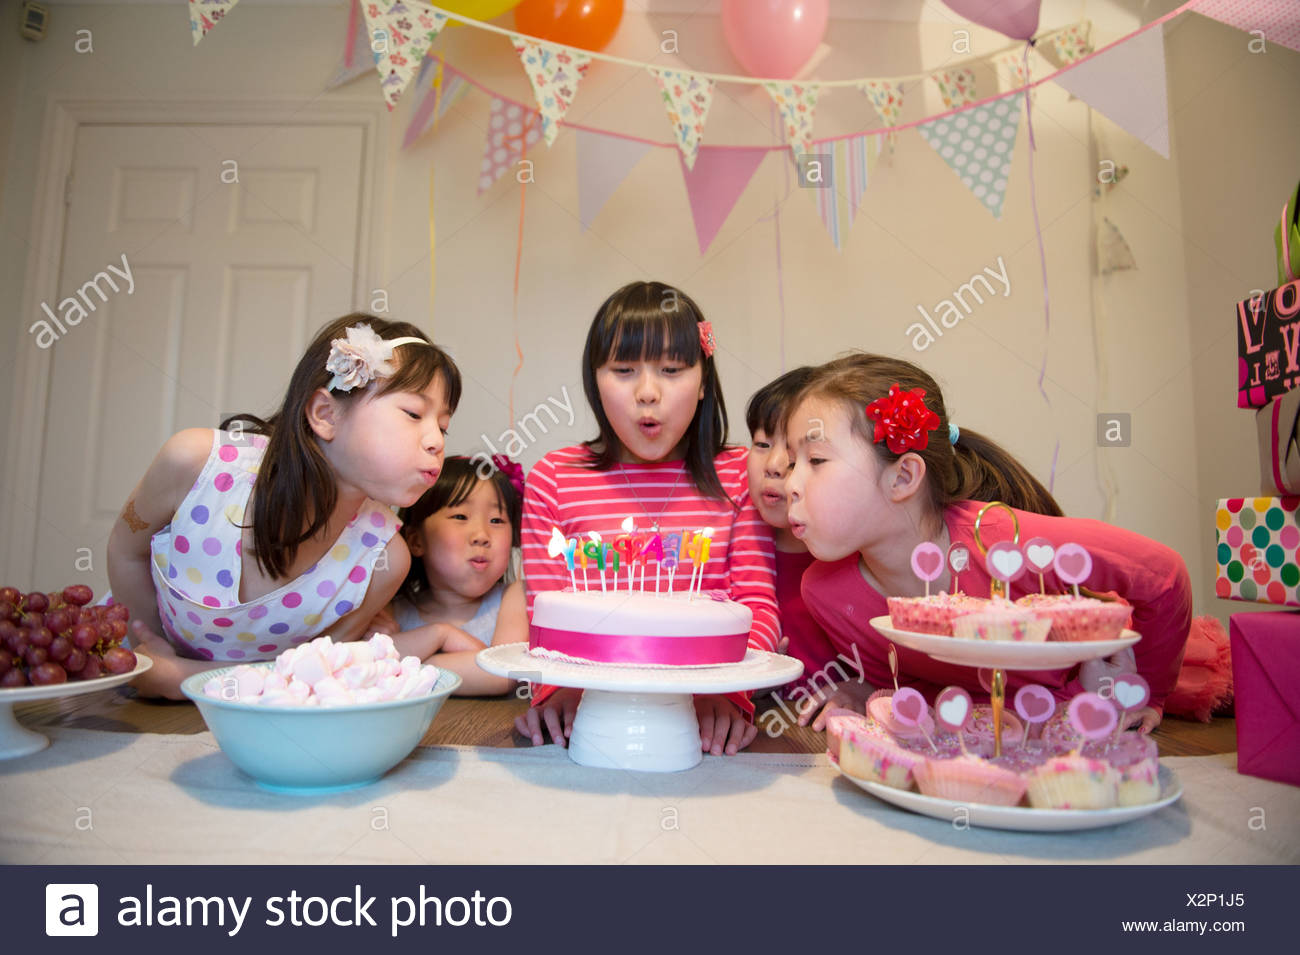 Girls blowing out birthday candles on cake - Stock Image